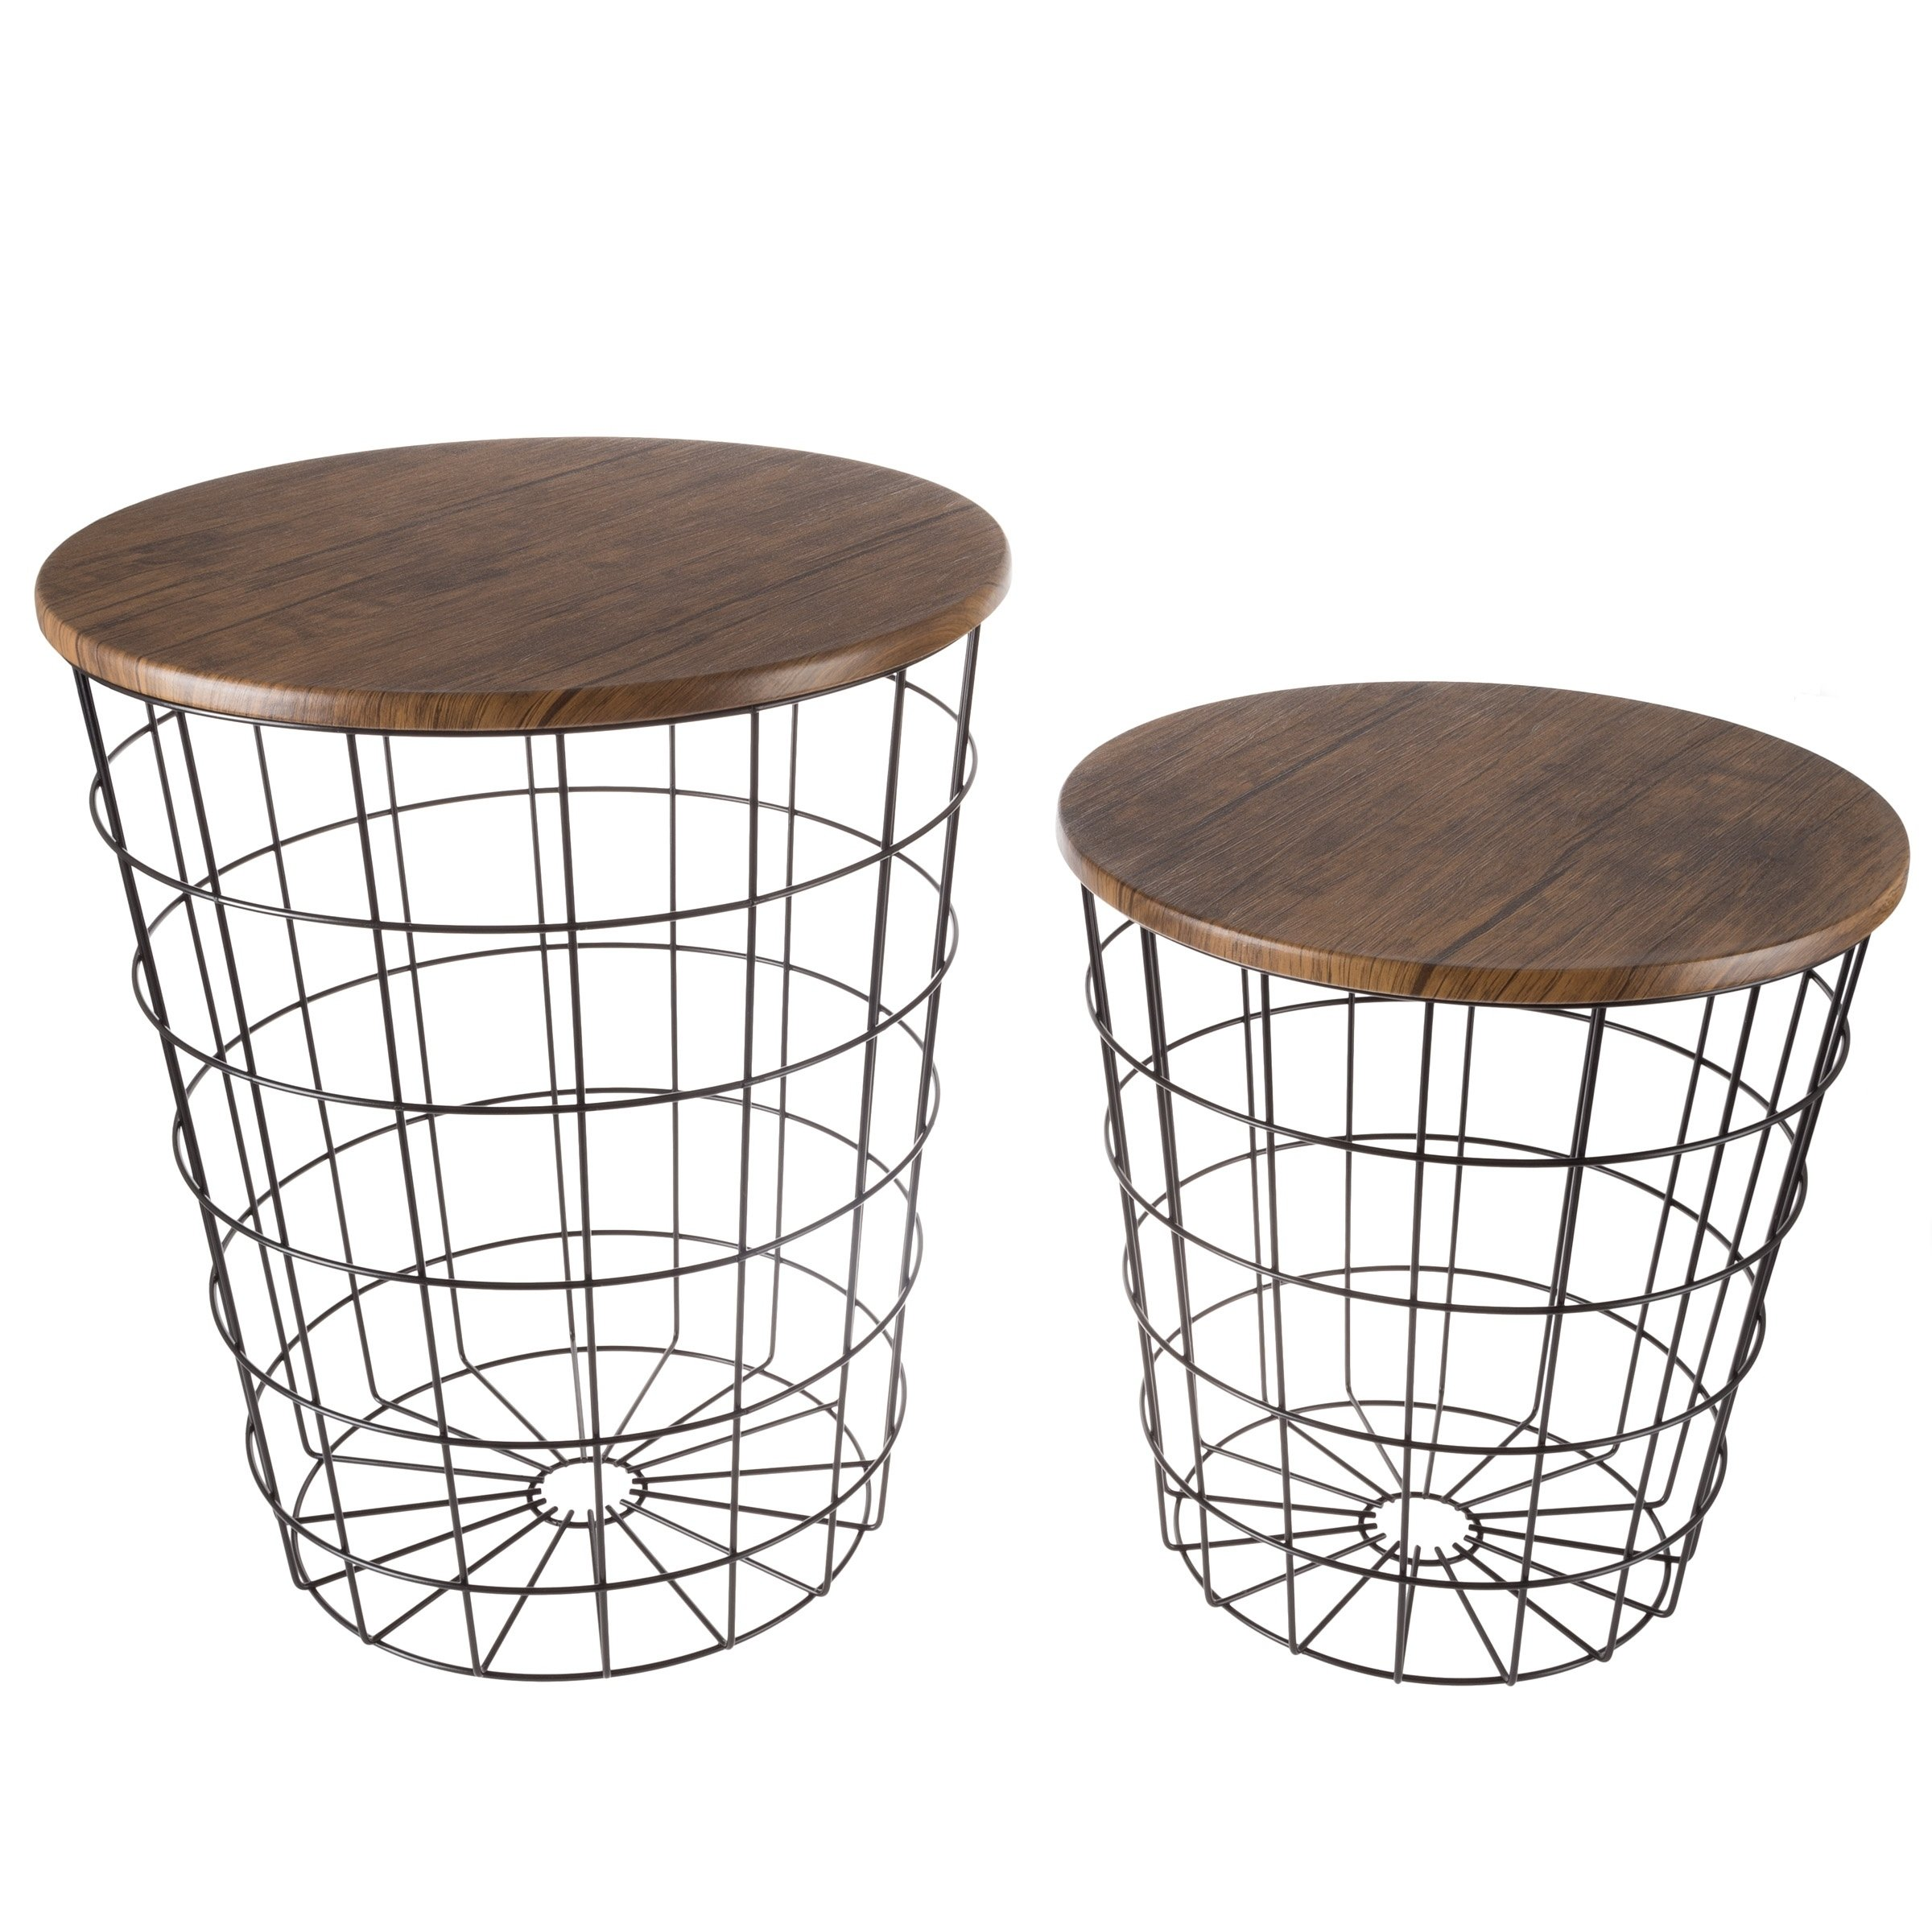 nesting end tables with storage set convertible round metal basket veneer wood top accent side lavish home wire table free shipping today all modern high pub and chairs mirrored